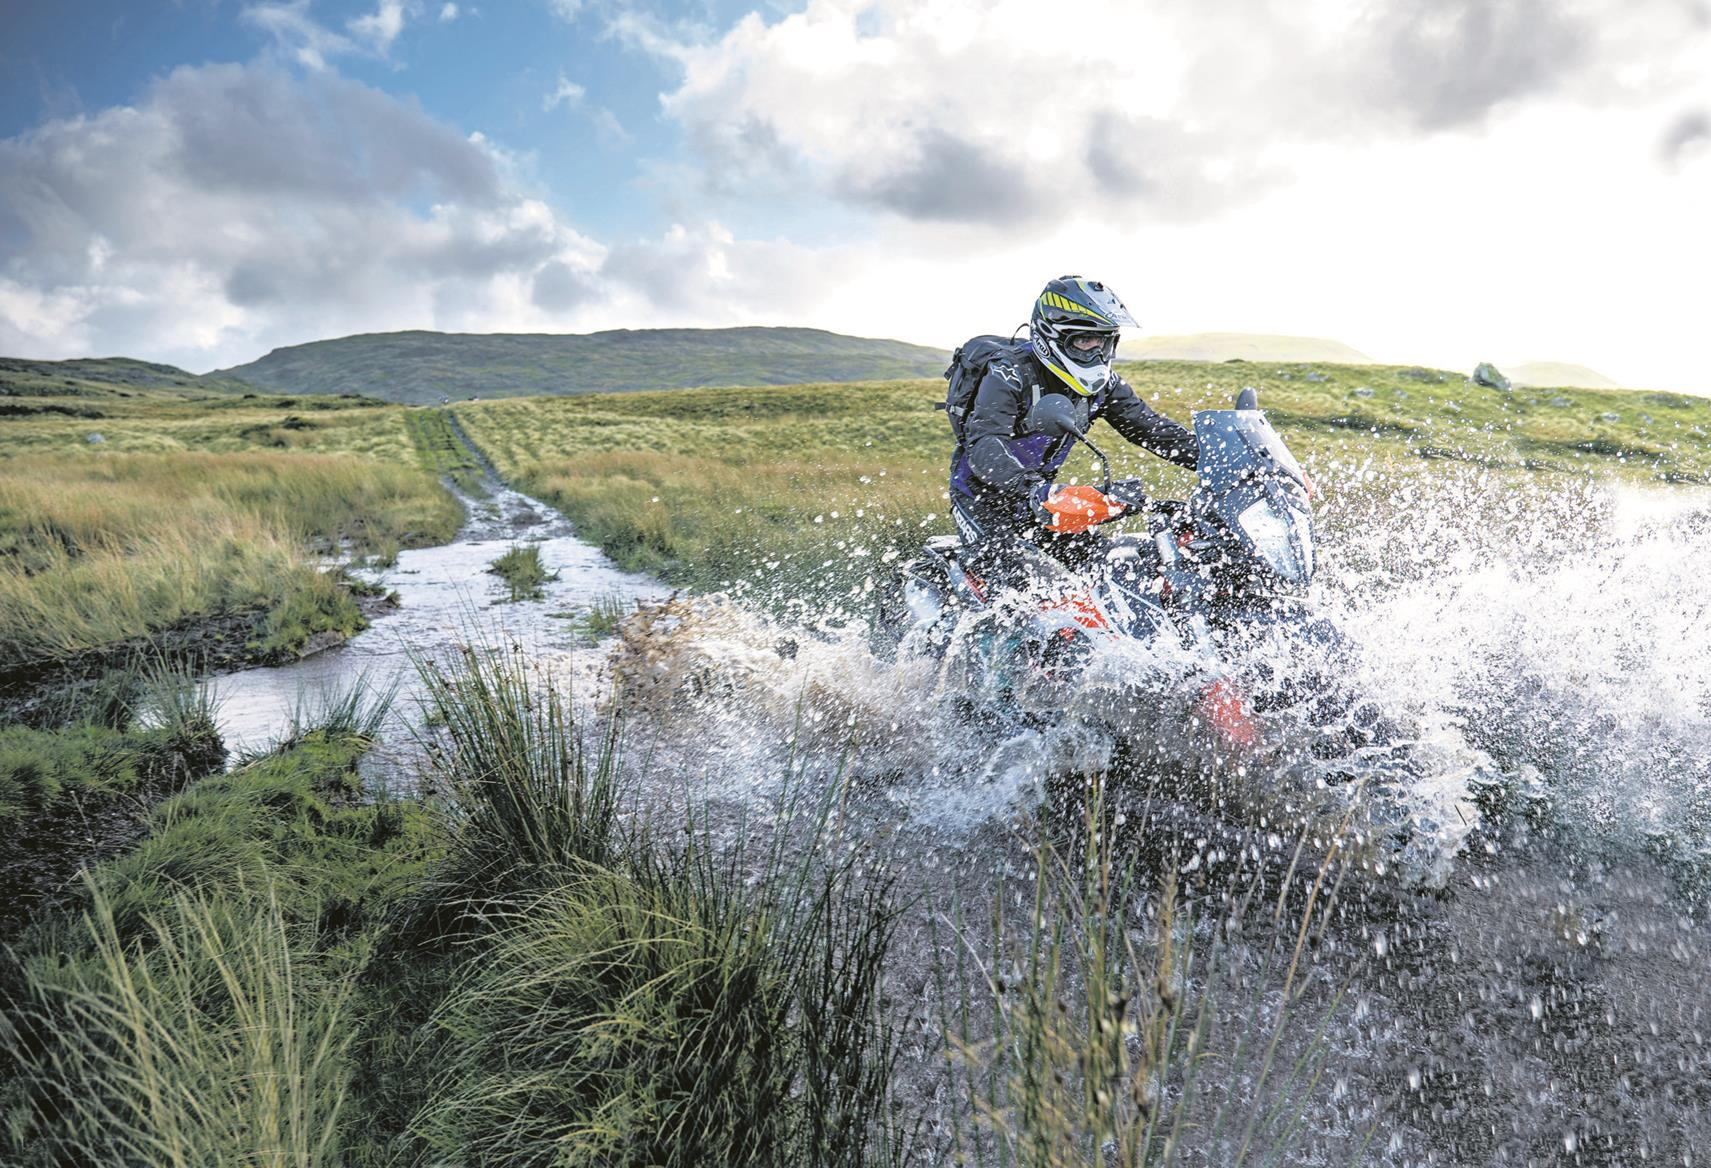 MCN Fleet: KTM 790 Adventure R delivers on its potential